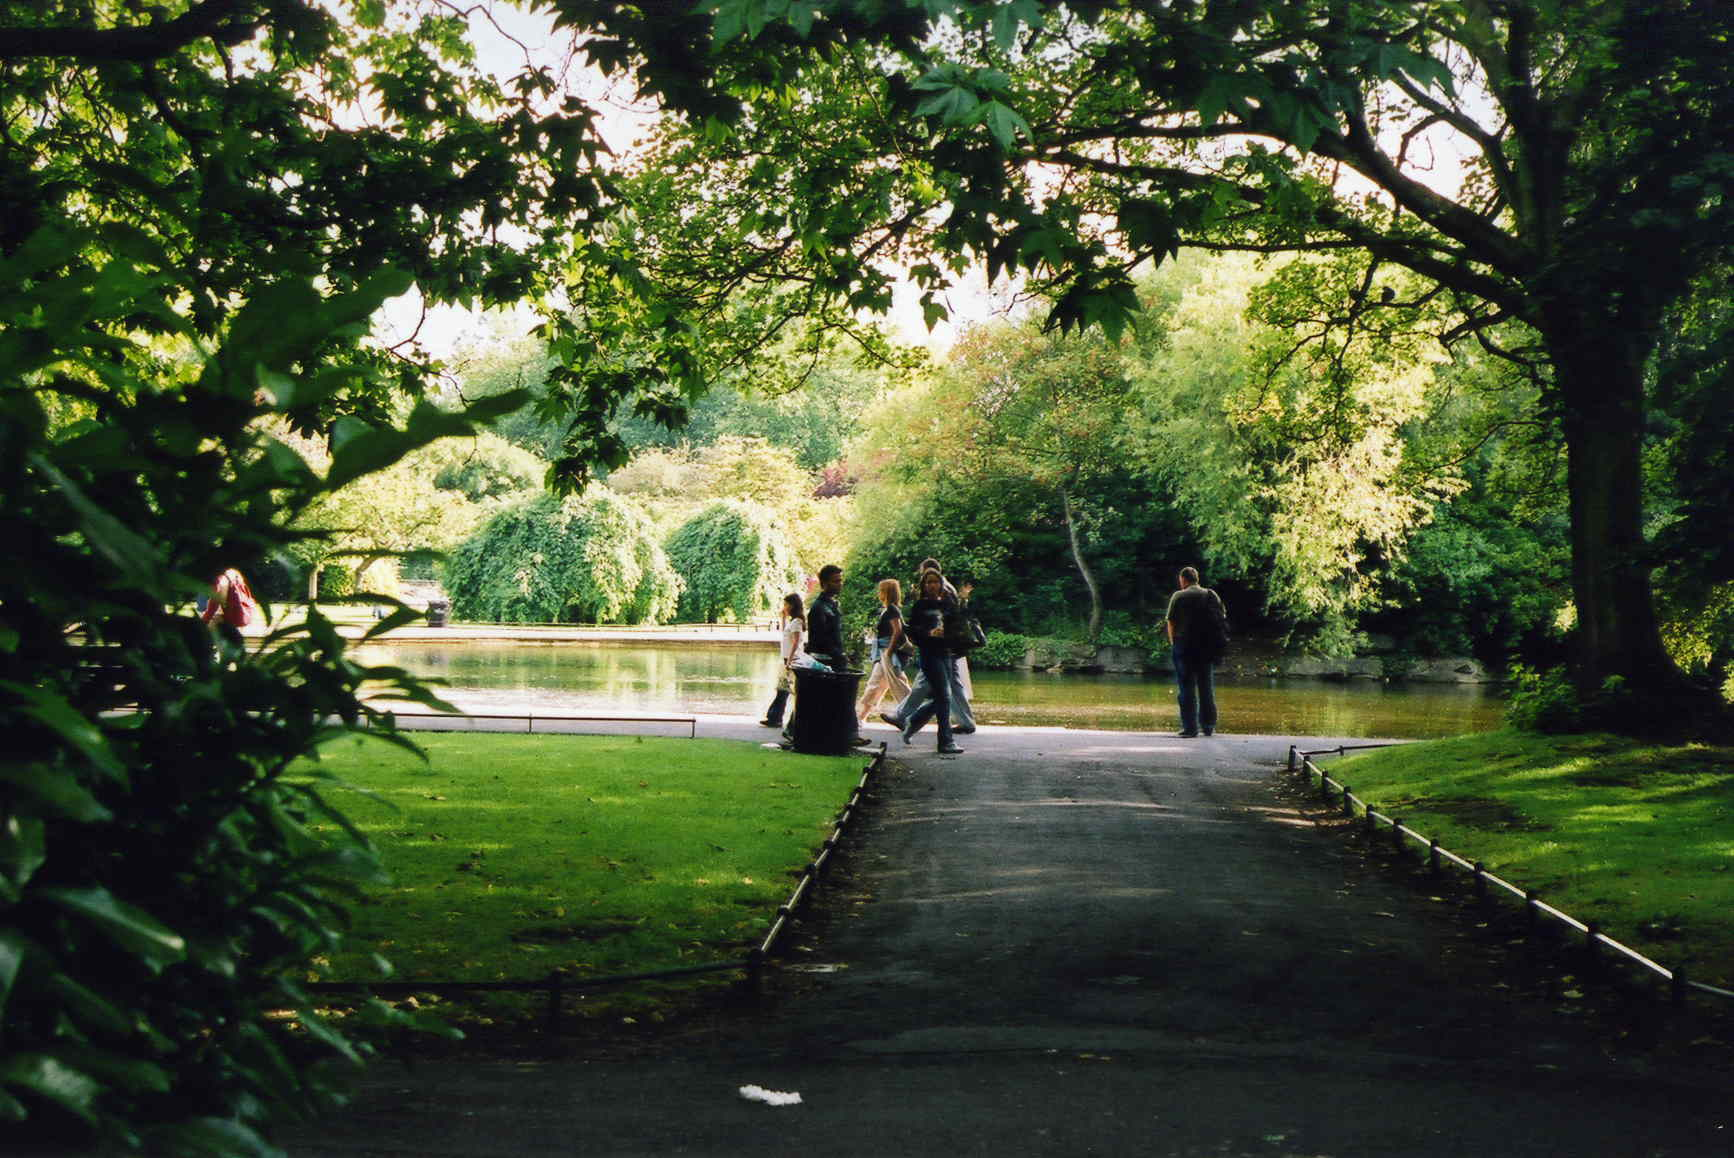 St. Stephen's Green.jpg